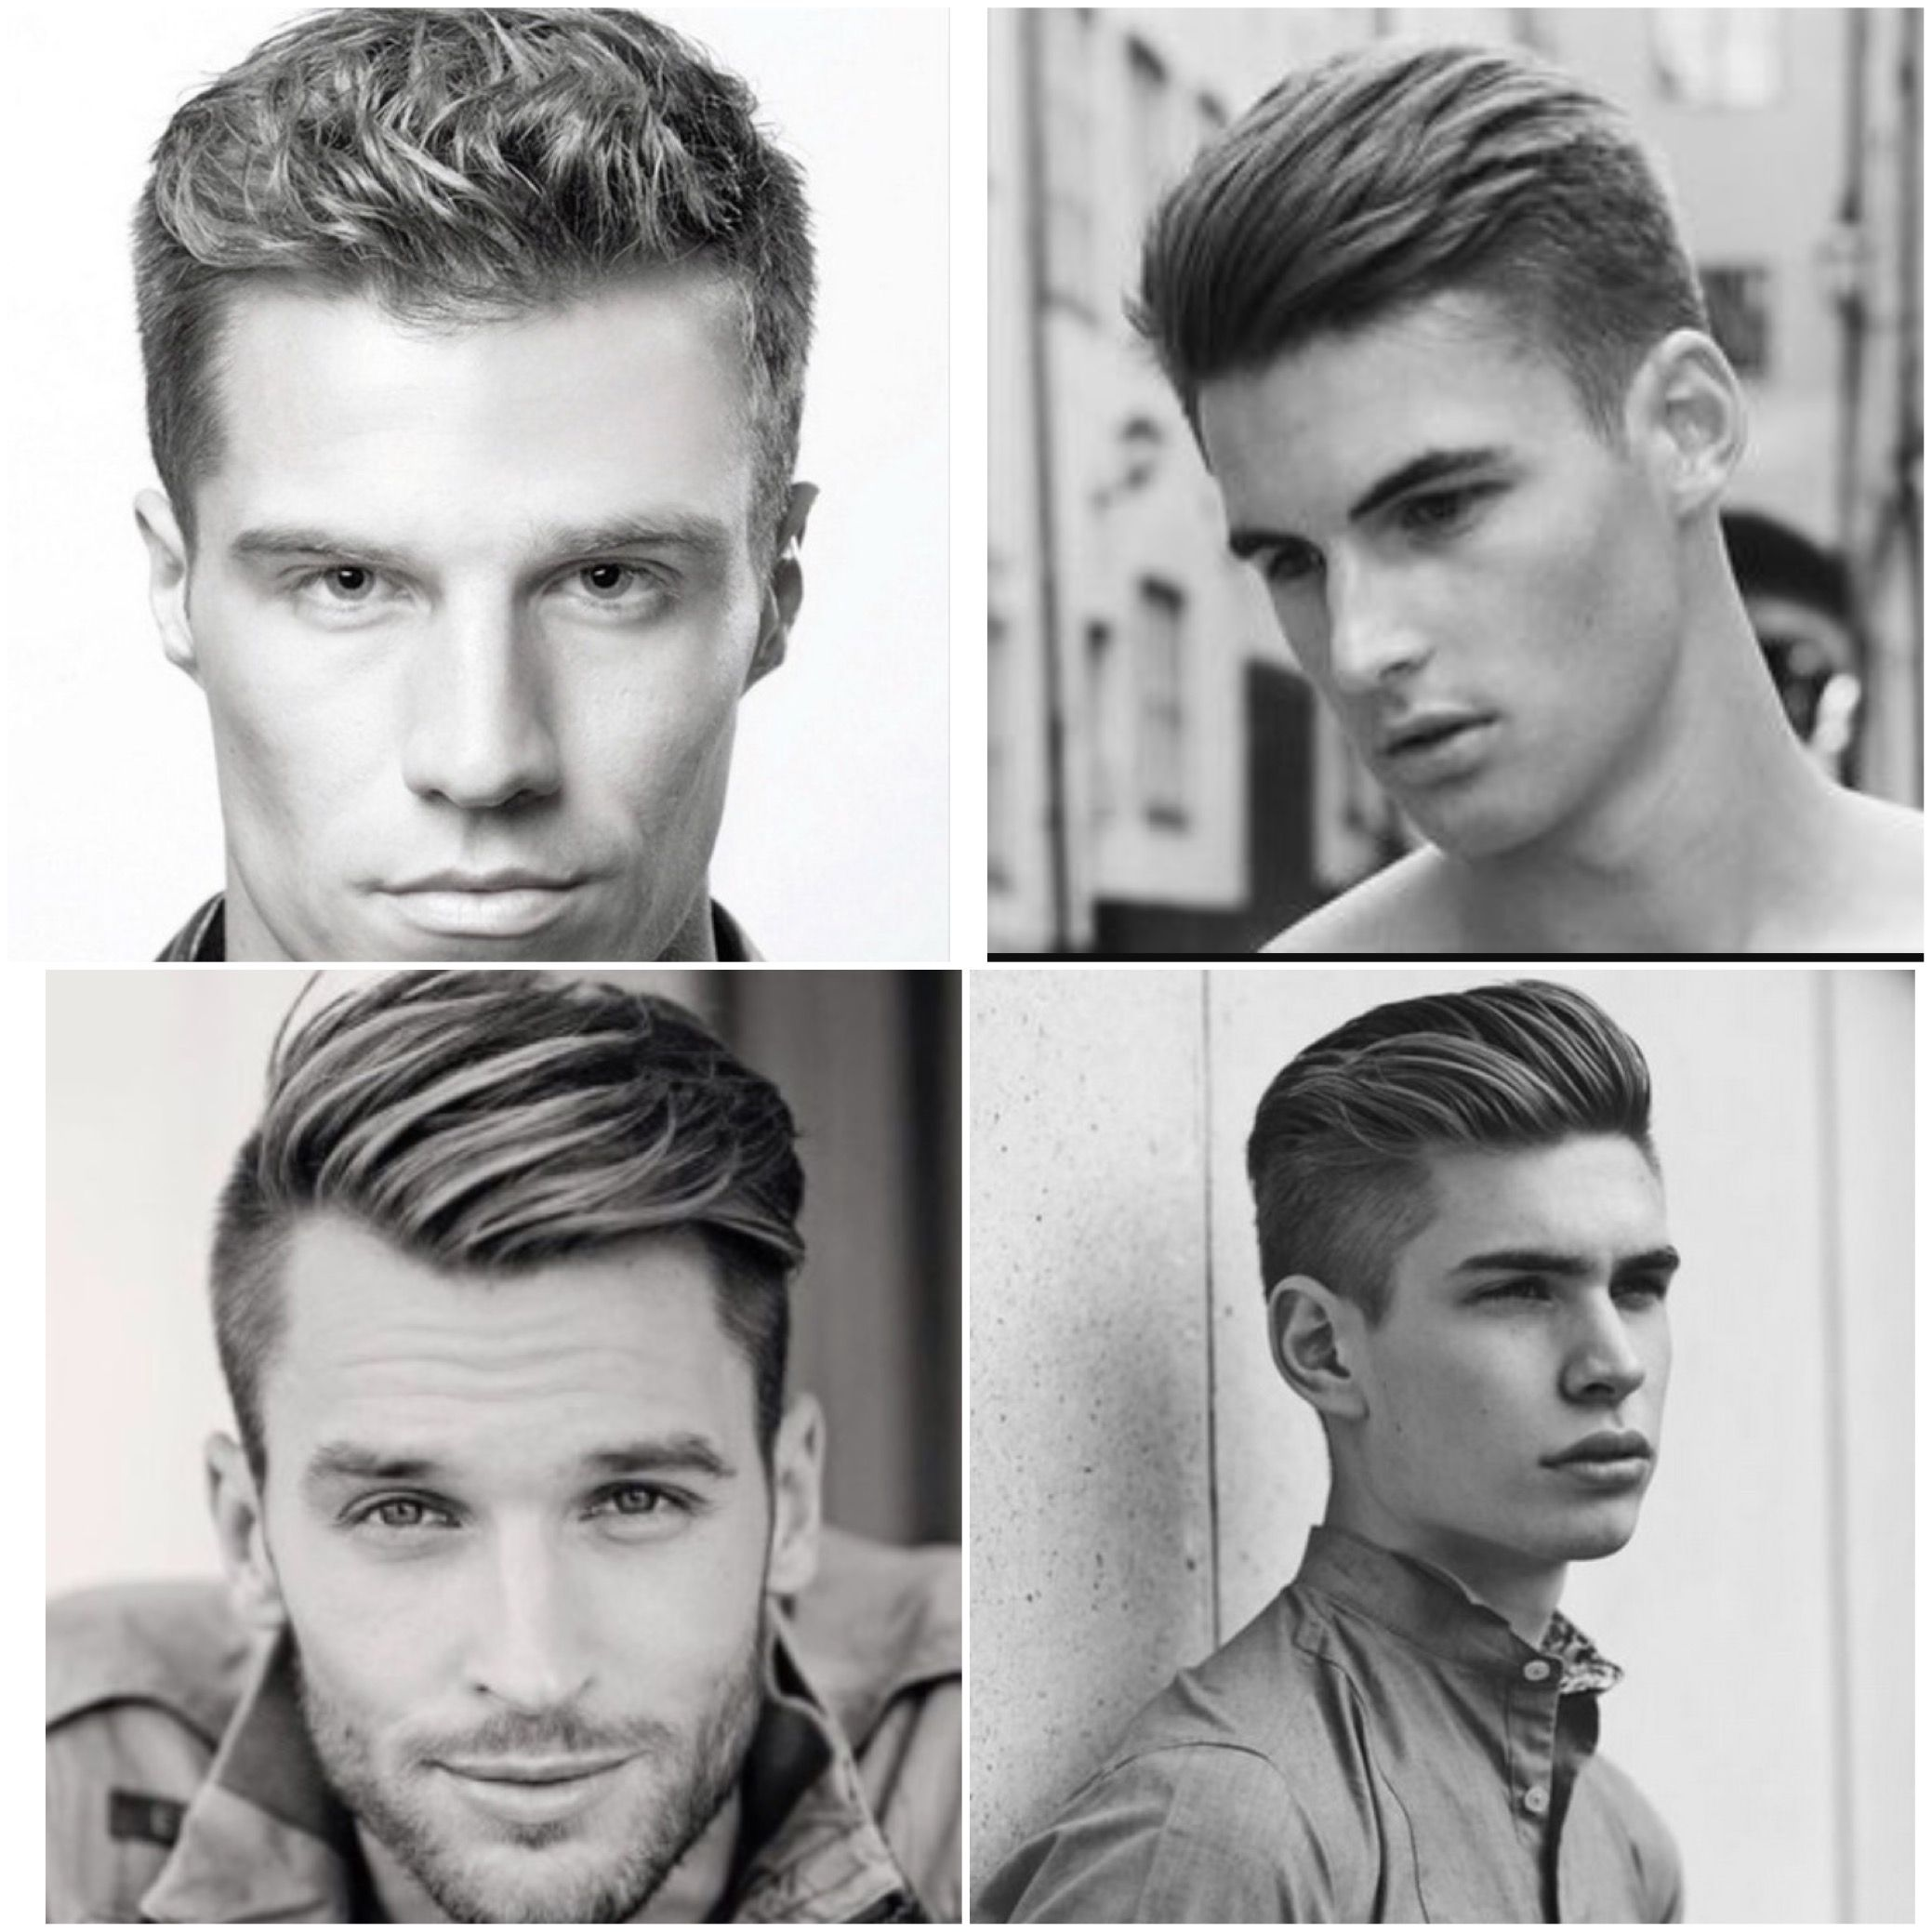 Types of haircuts for men pin by joseph kheir on hair styles  pinterest  hair style